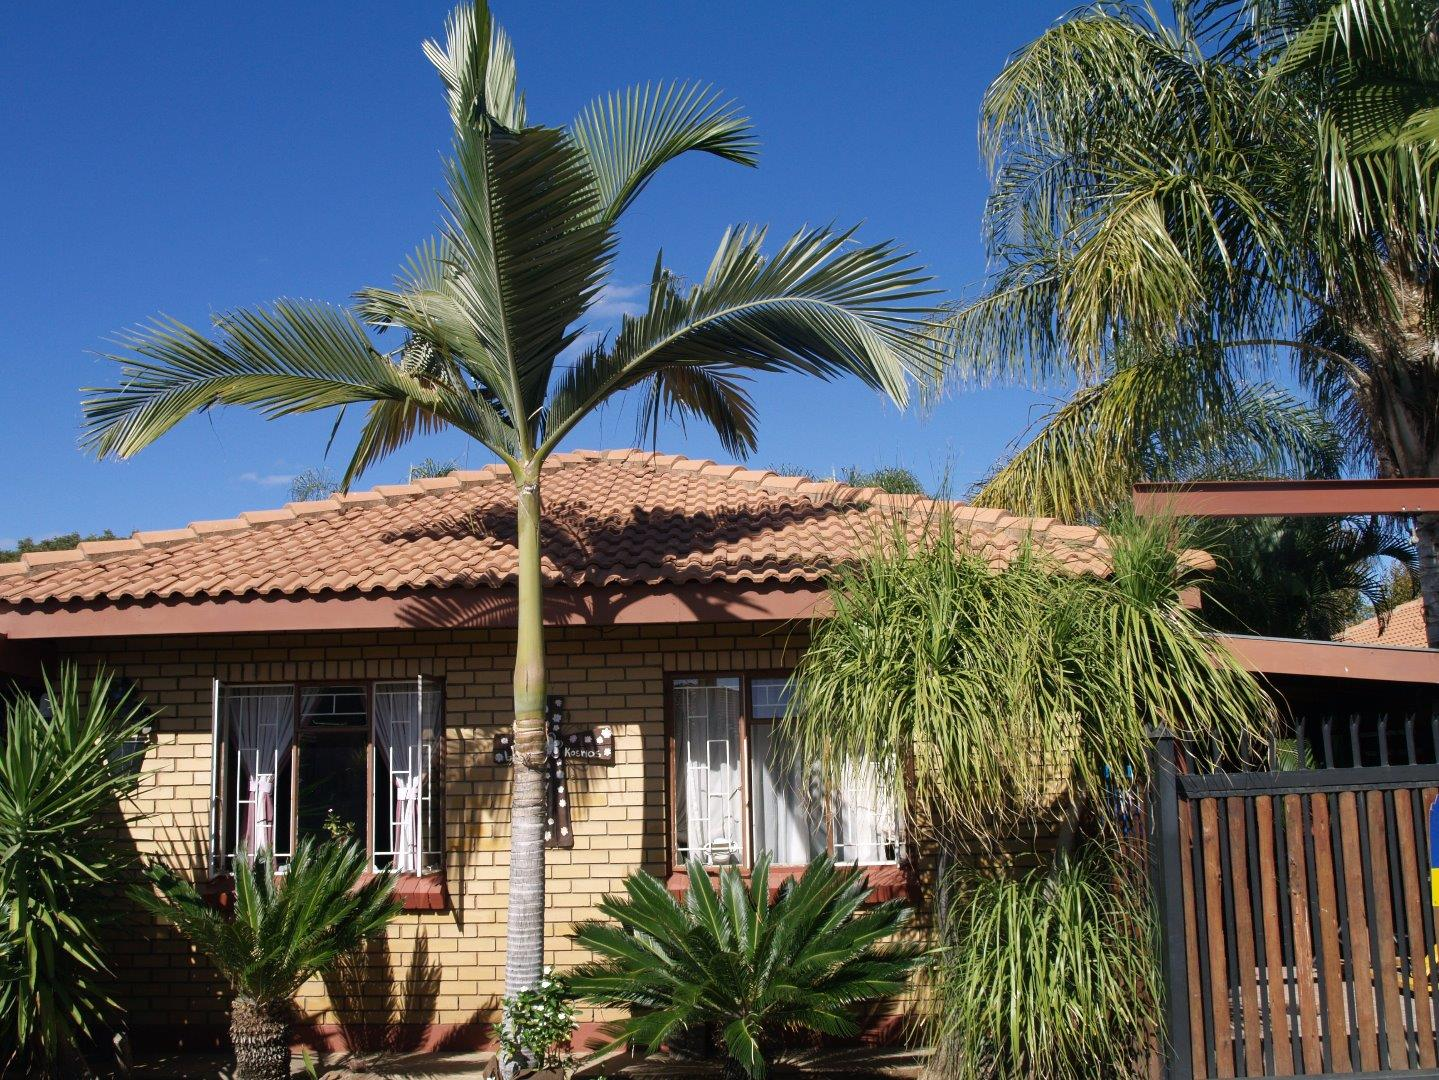 3 Bedroom  House for Sale in Lephalale - Limpopo